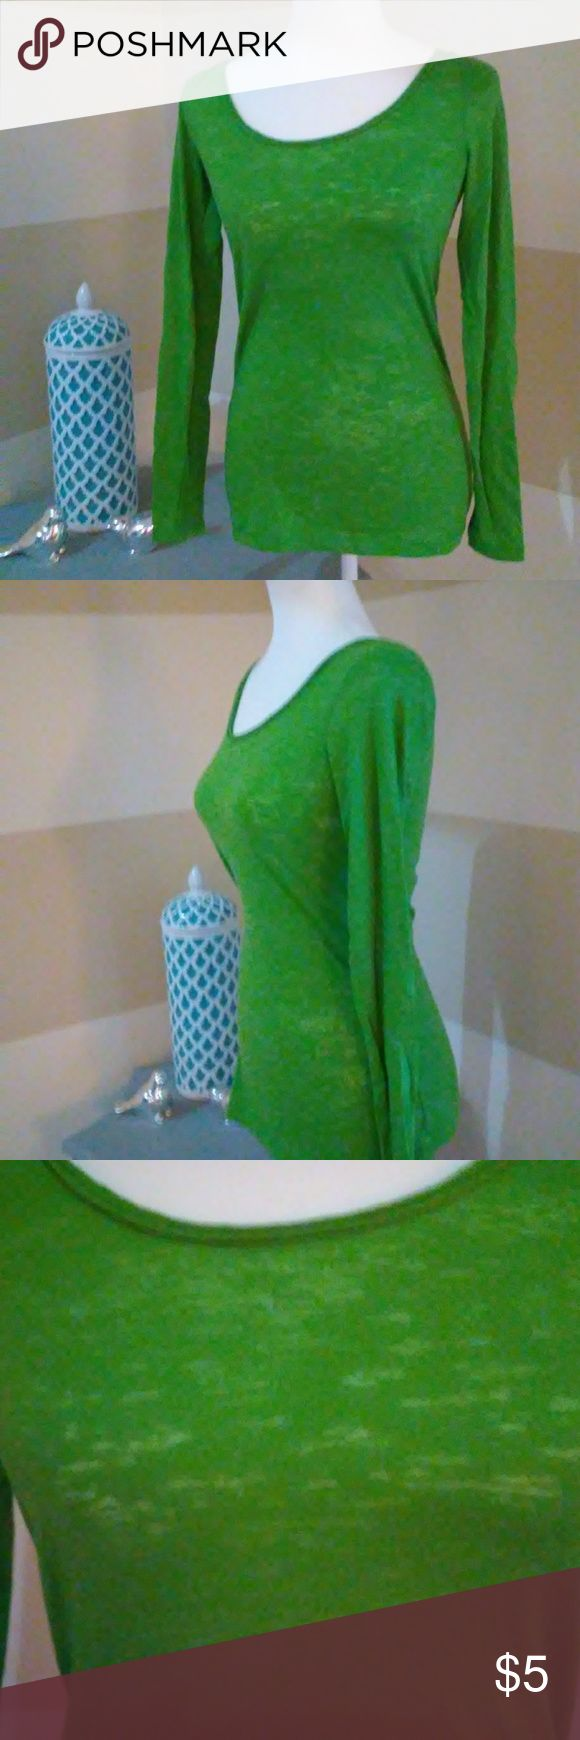 🍀Lime Green Long Sleeve Top🍀 Lime green long sleeve top material is sheer you would need a cami underneath or bralette. Perfect for st. Patrick's Day🍀 Mossimo Supply Co. Tops Tees - Long Sleeve